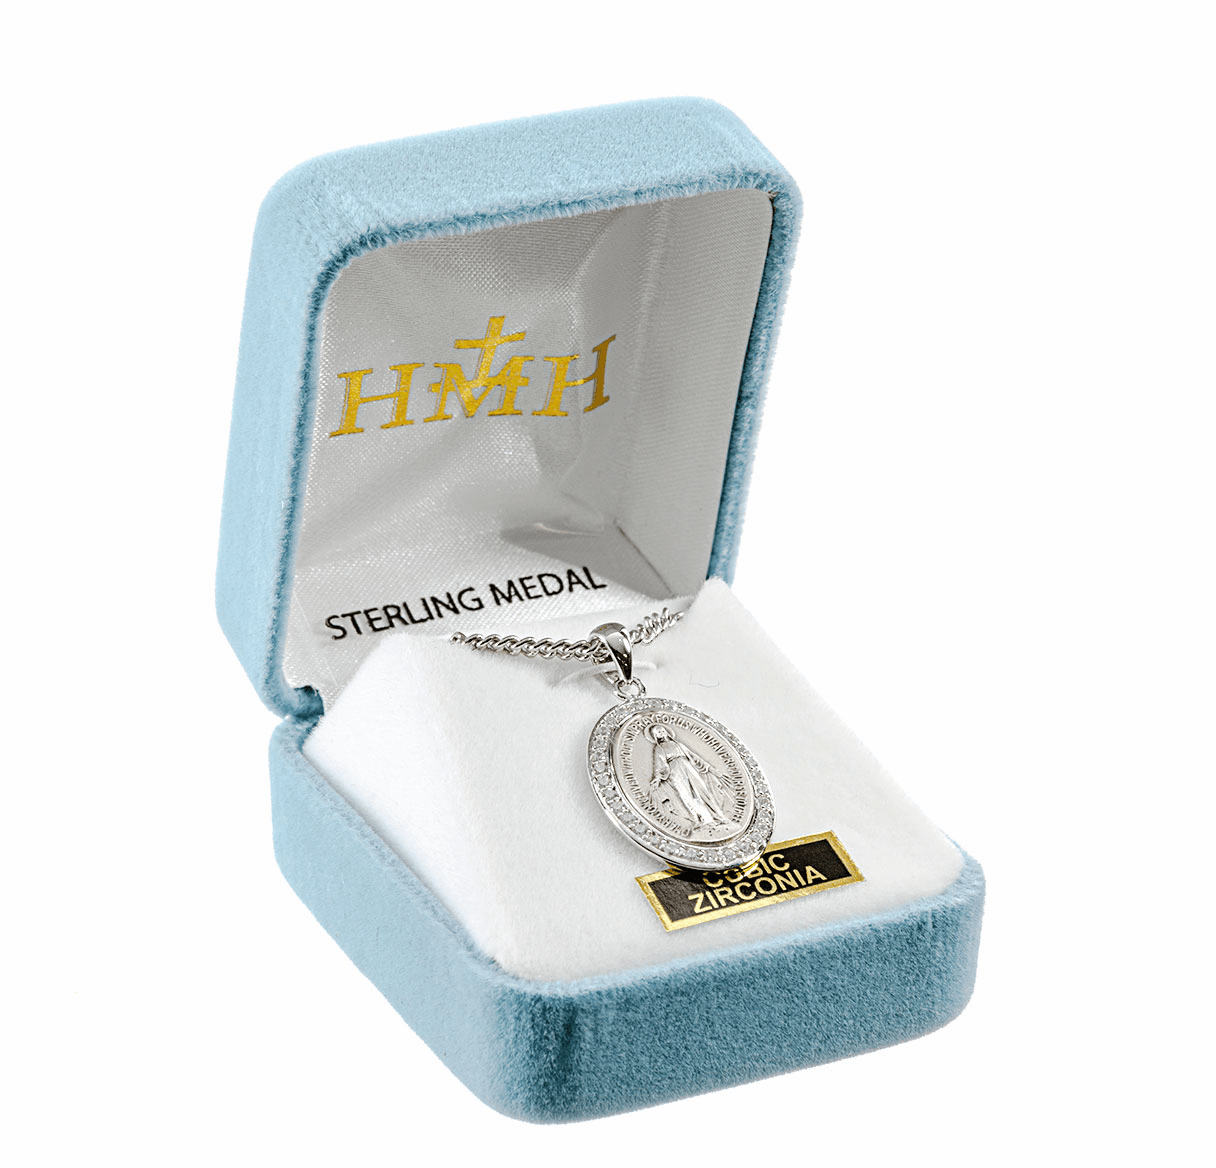 Miraculous Crystal Cubic Zirconia Sterling Silver Pendant by HMH Religious